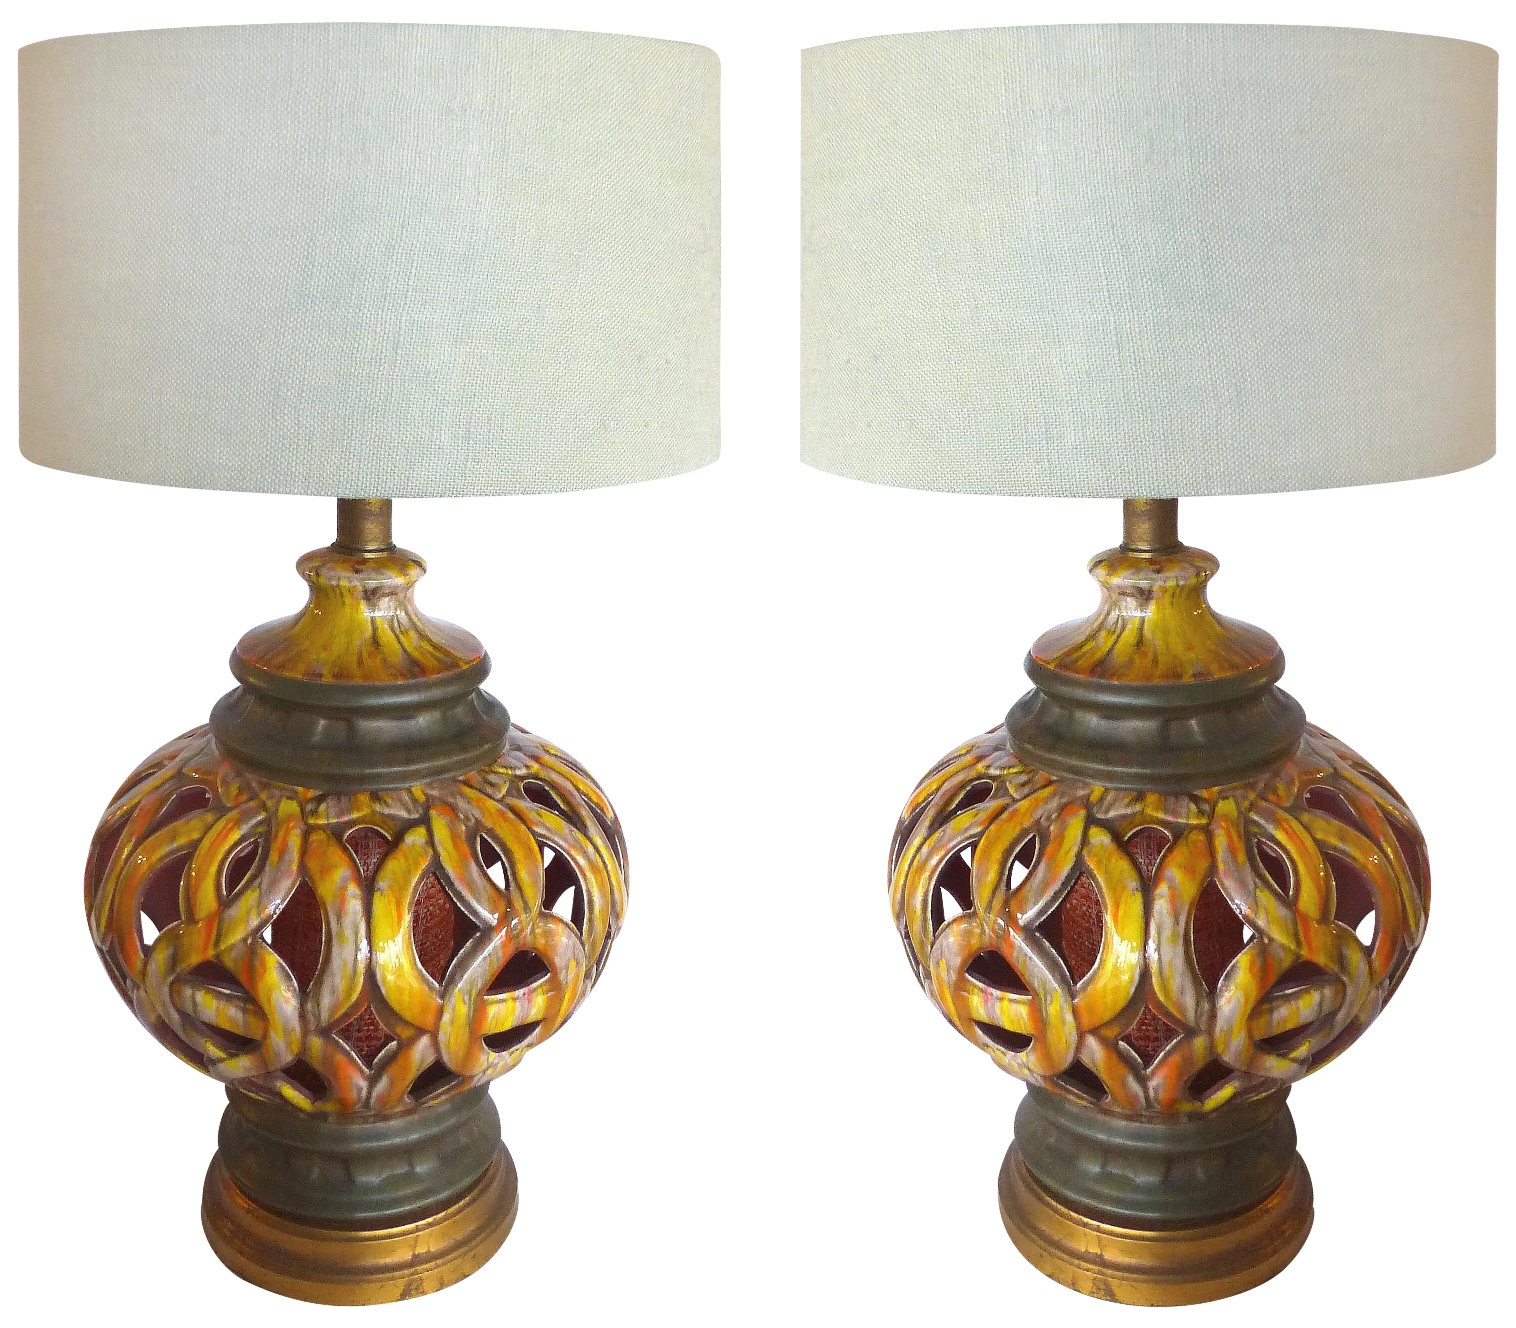 60s Pierced Ceramic Table Lamps Pair Modernism